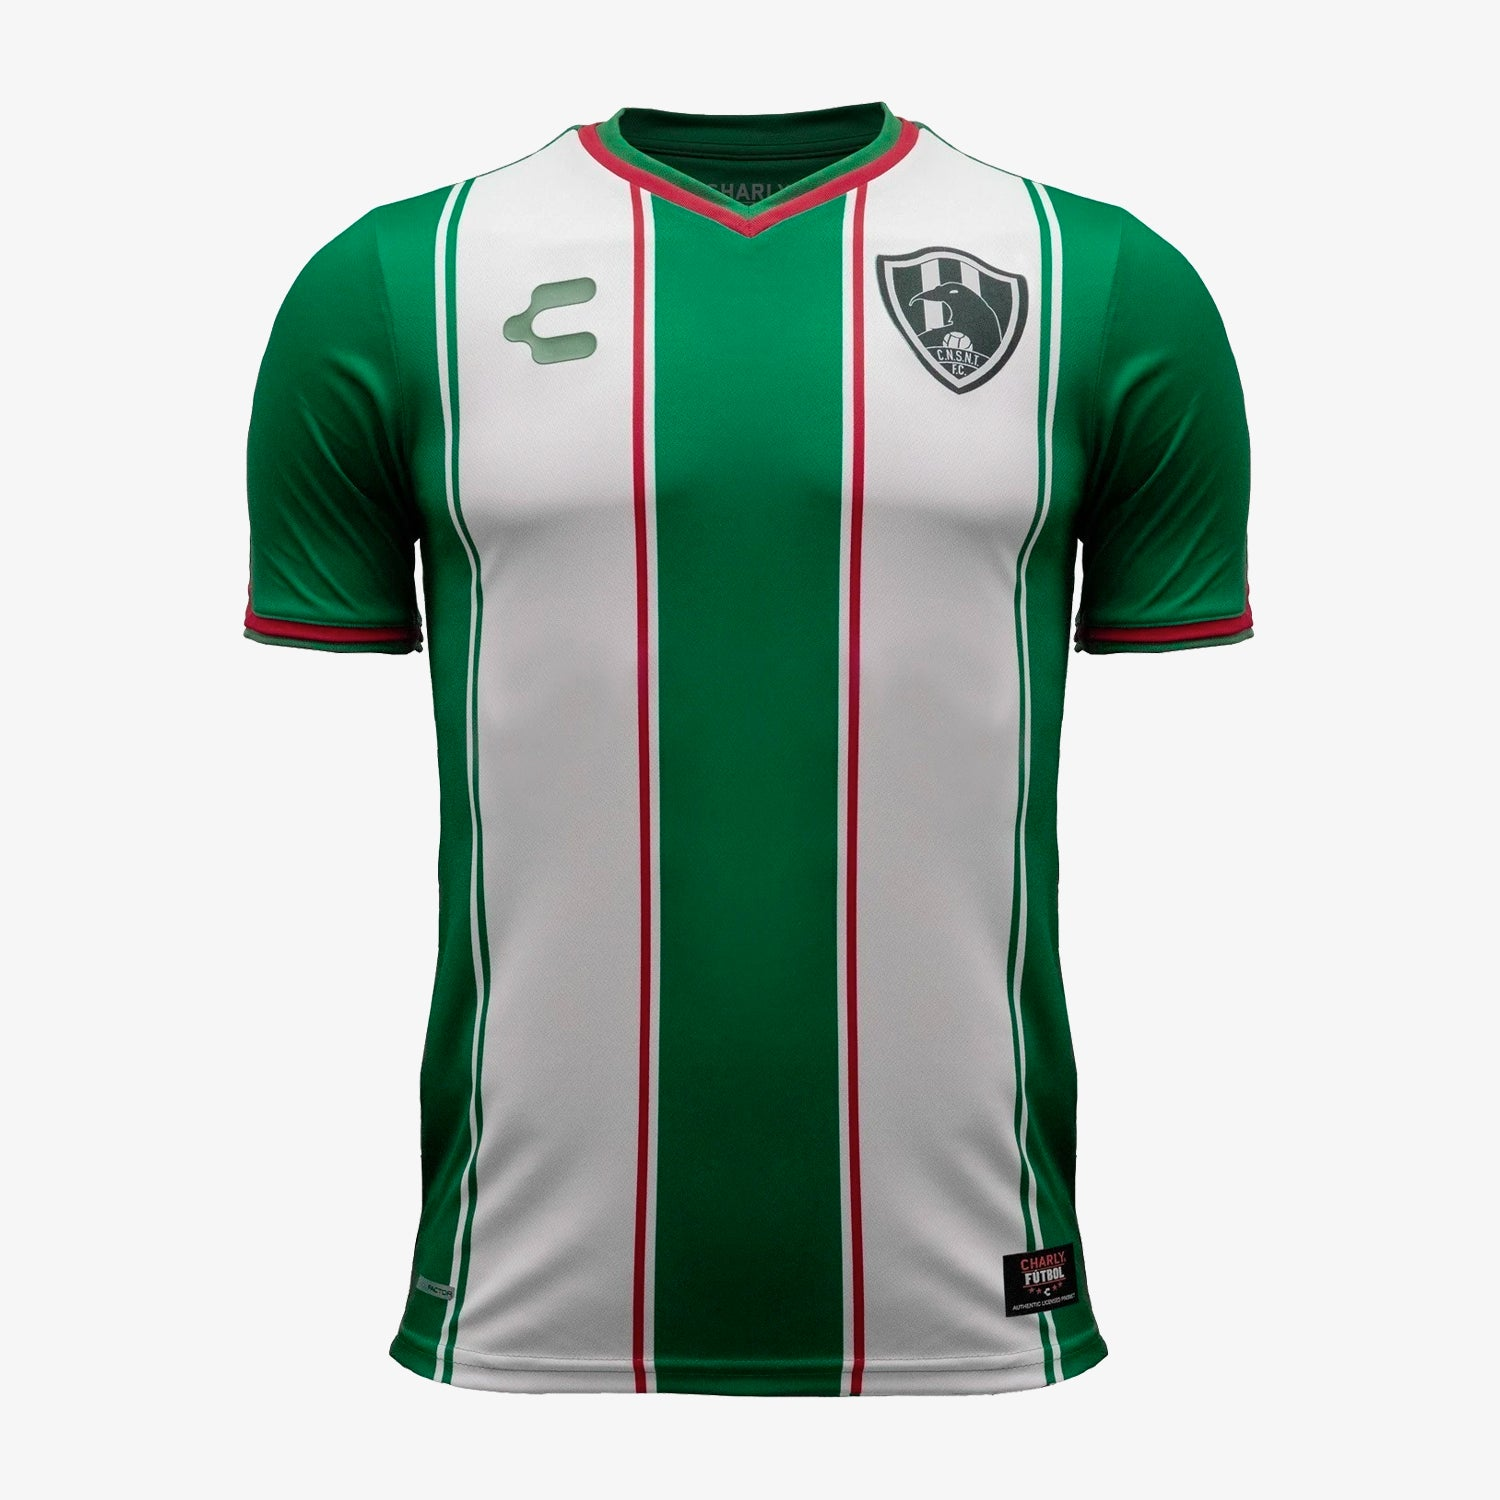 Mens C.N.S.N.T Cuervos 18/19 Away Soccer Jersey - Green/White/Red